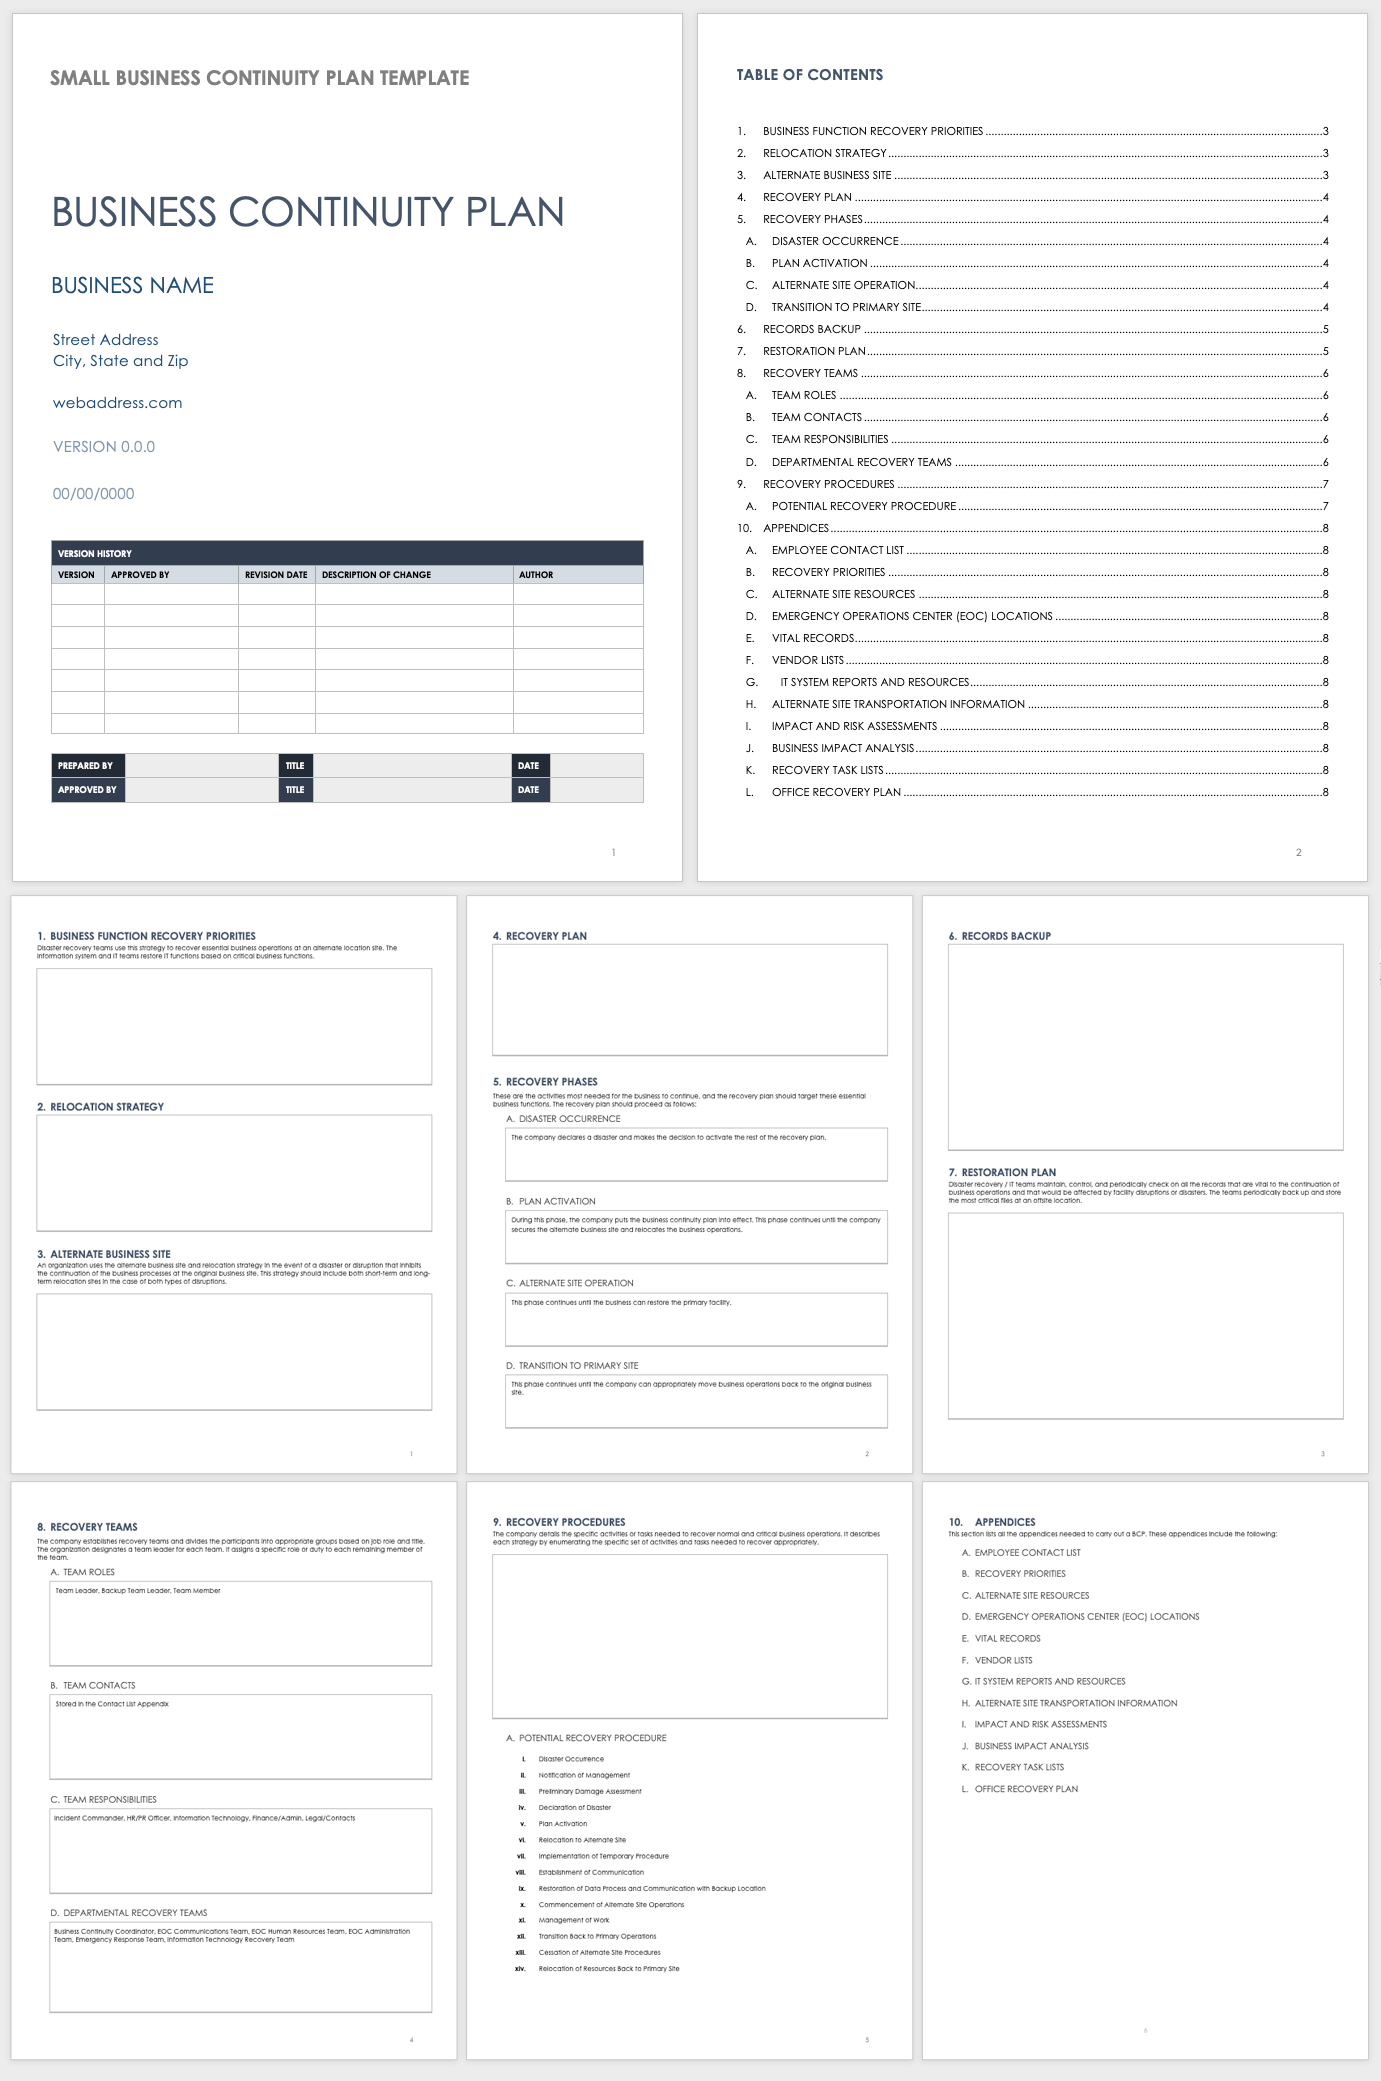 Contingency Plan Template For A Small Business from www.smartsheet.com